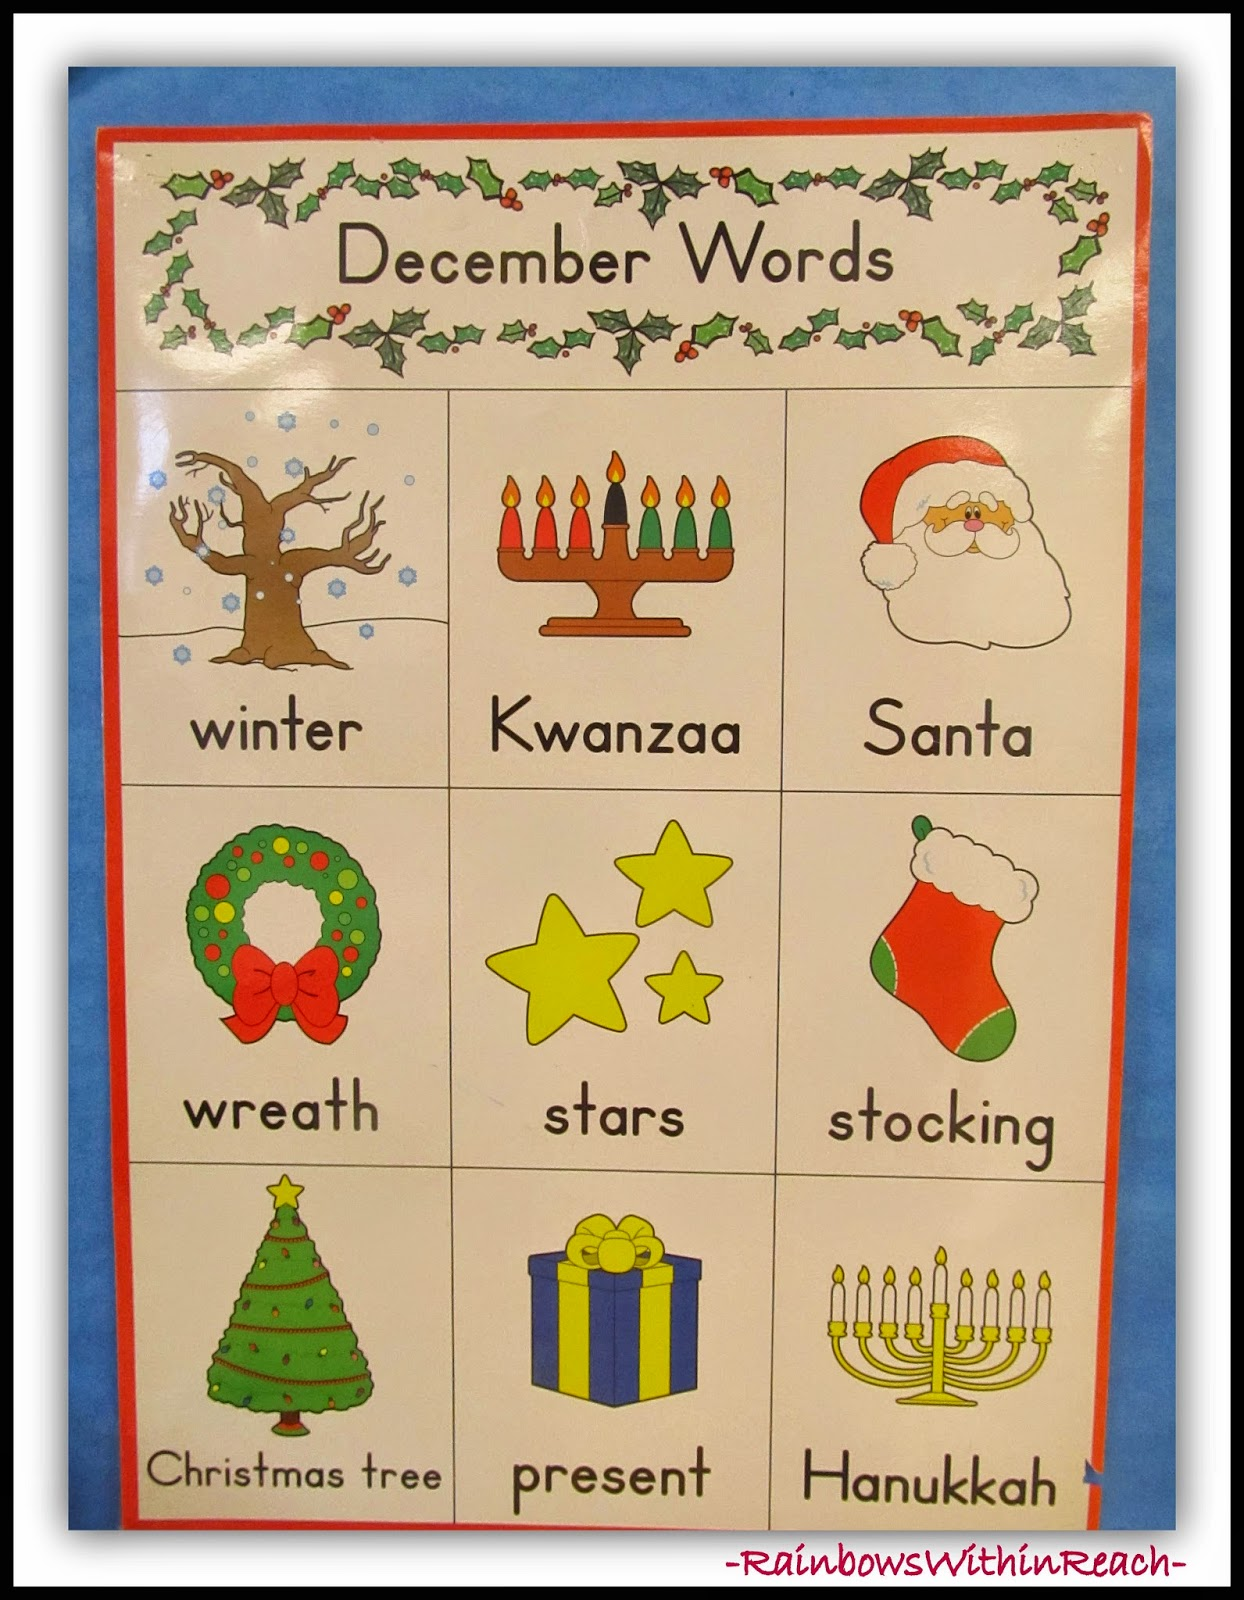 December Word Chart from Christmas Bulletin Board RoundUP at RainbowsWithinReach